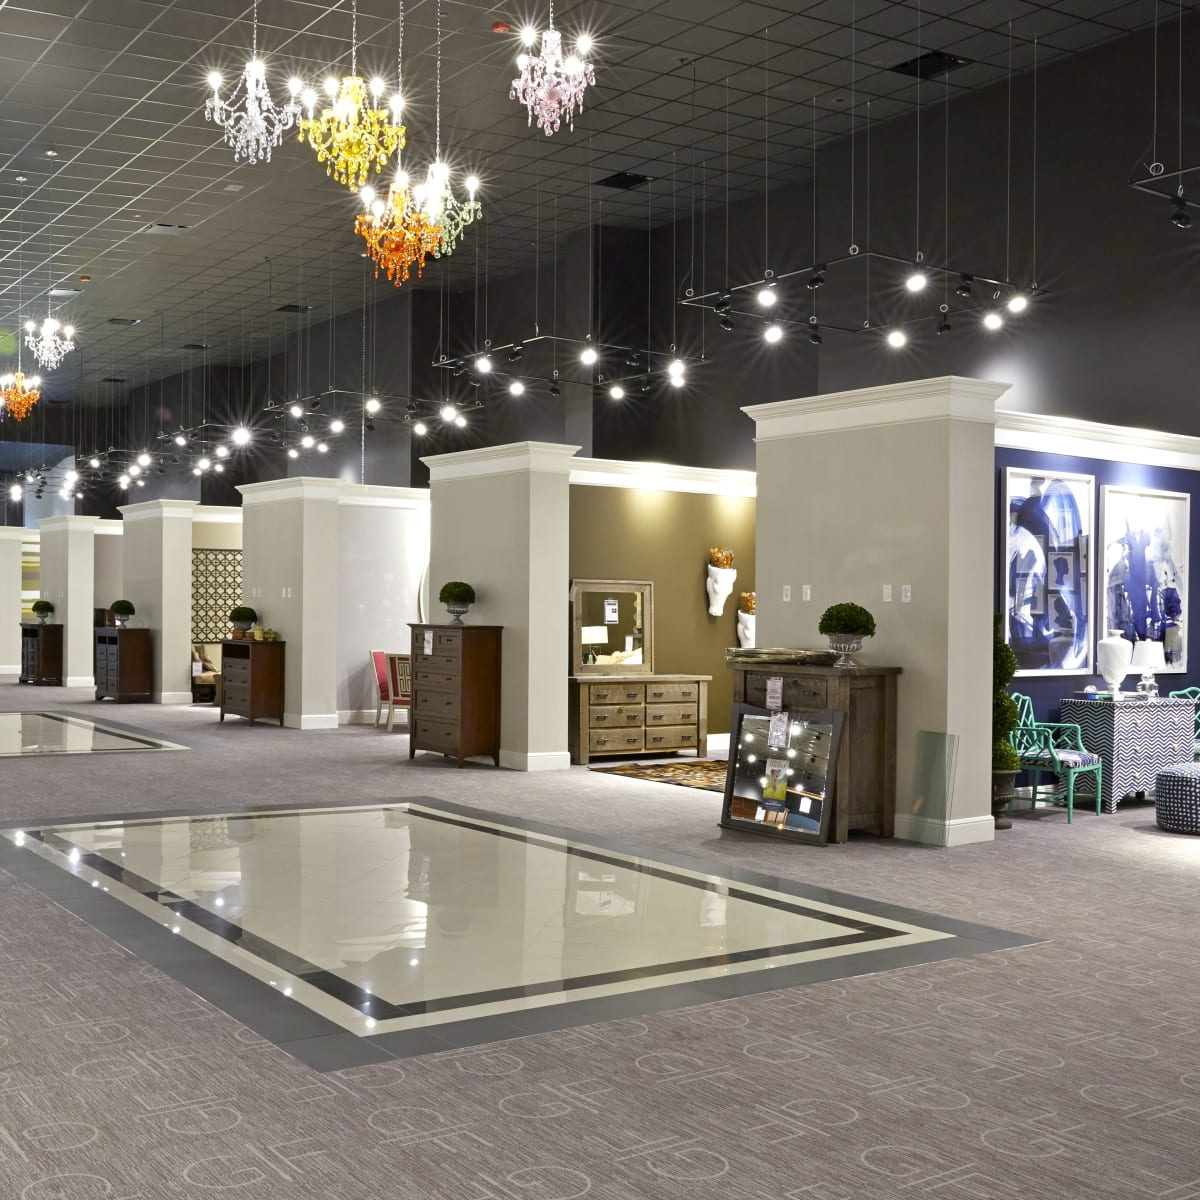 Houston, Gallery Furniture Grand Parkway Opening, June 2015, Gallery Furniture Grand Parkway interior